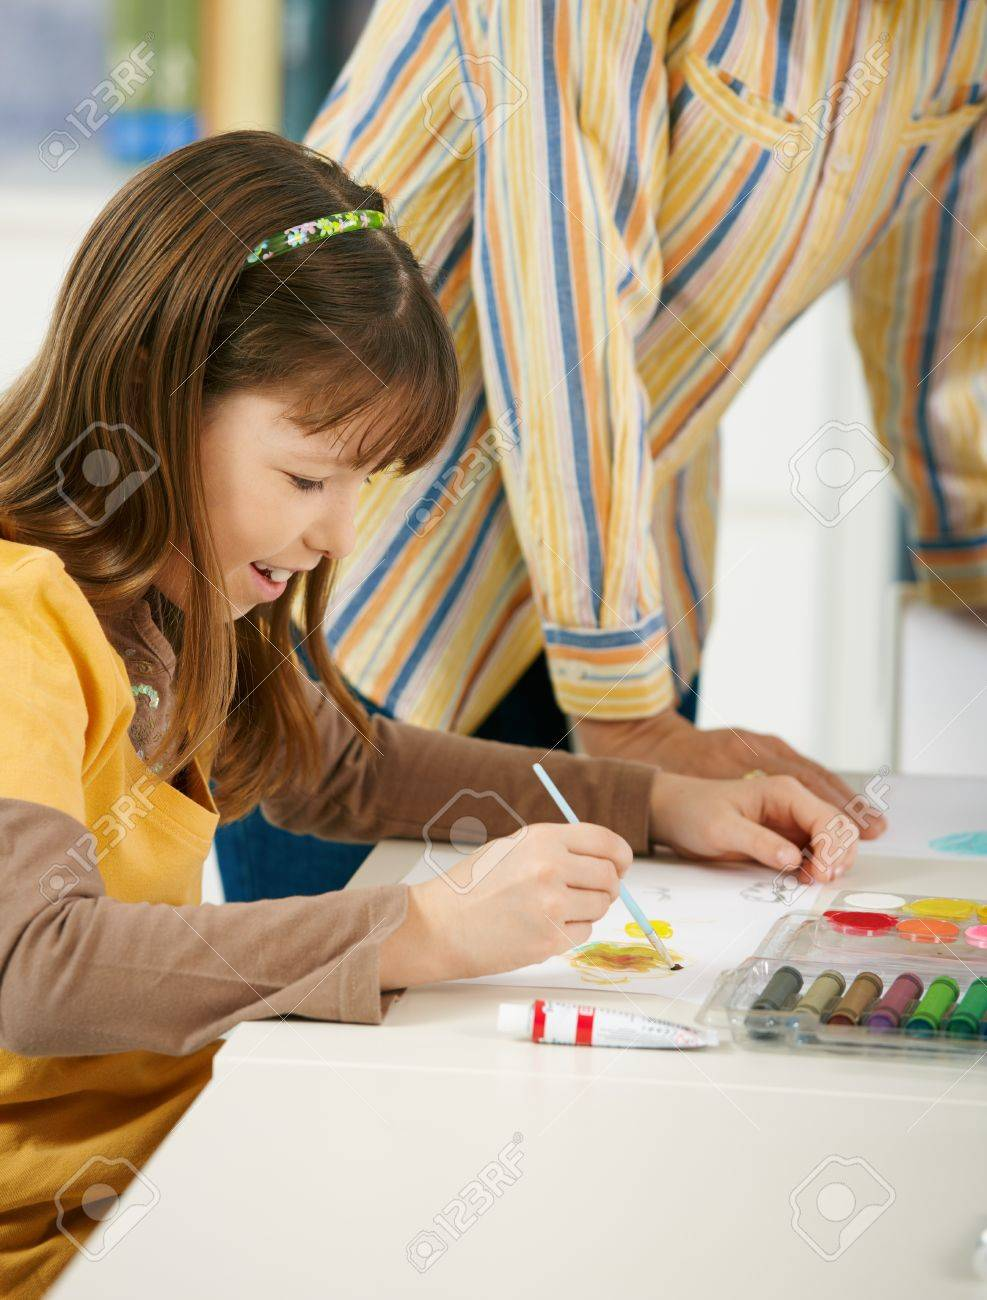 Elementary age girl sitting at desk enjoying painting with colors in art class at primary school classroom, smiling. Stock Photo - 7434859